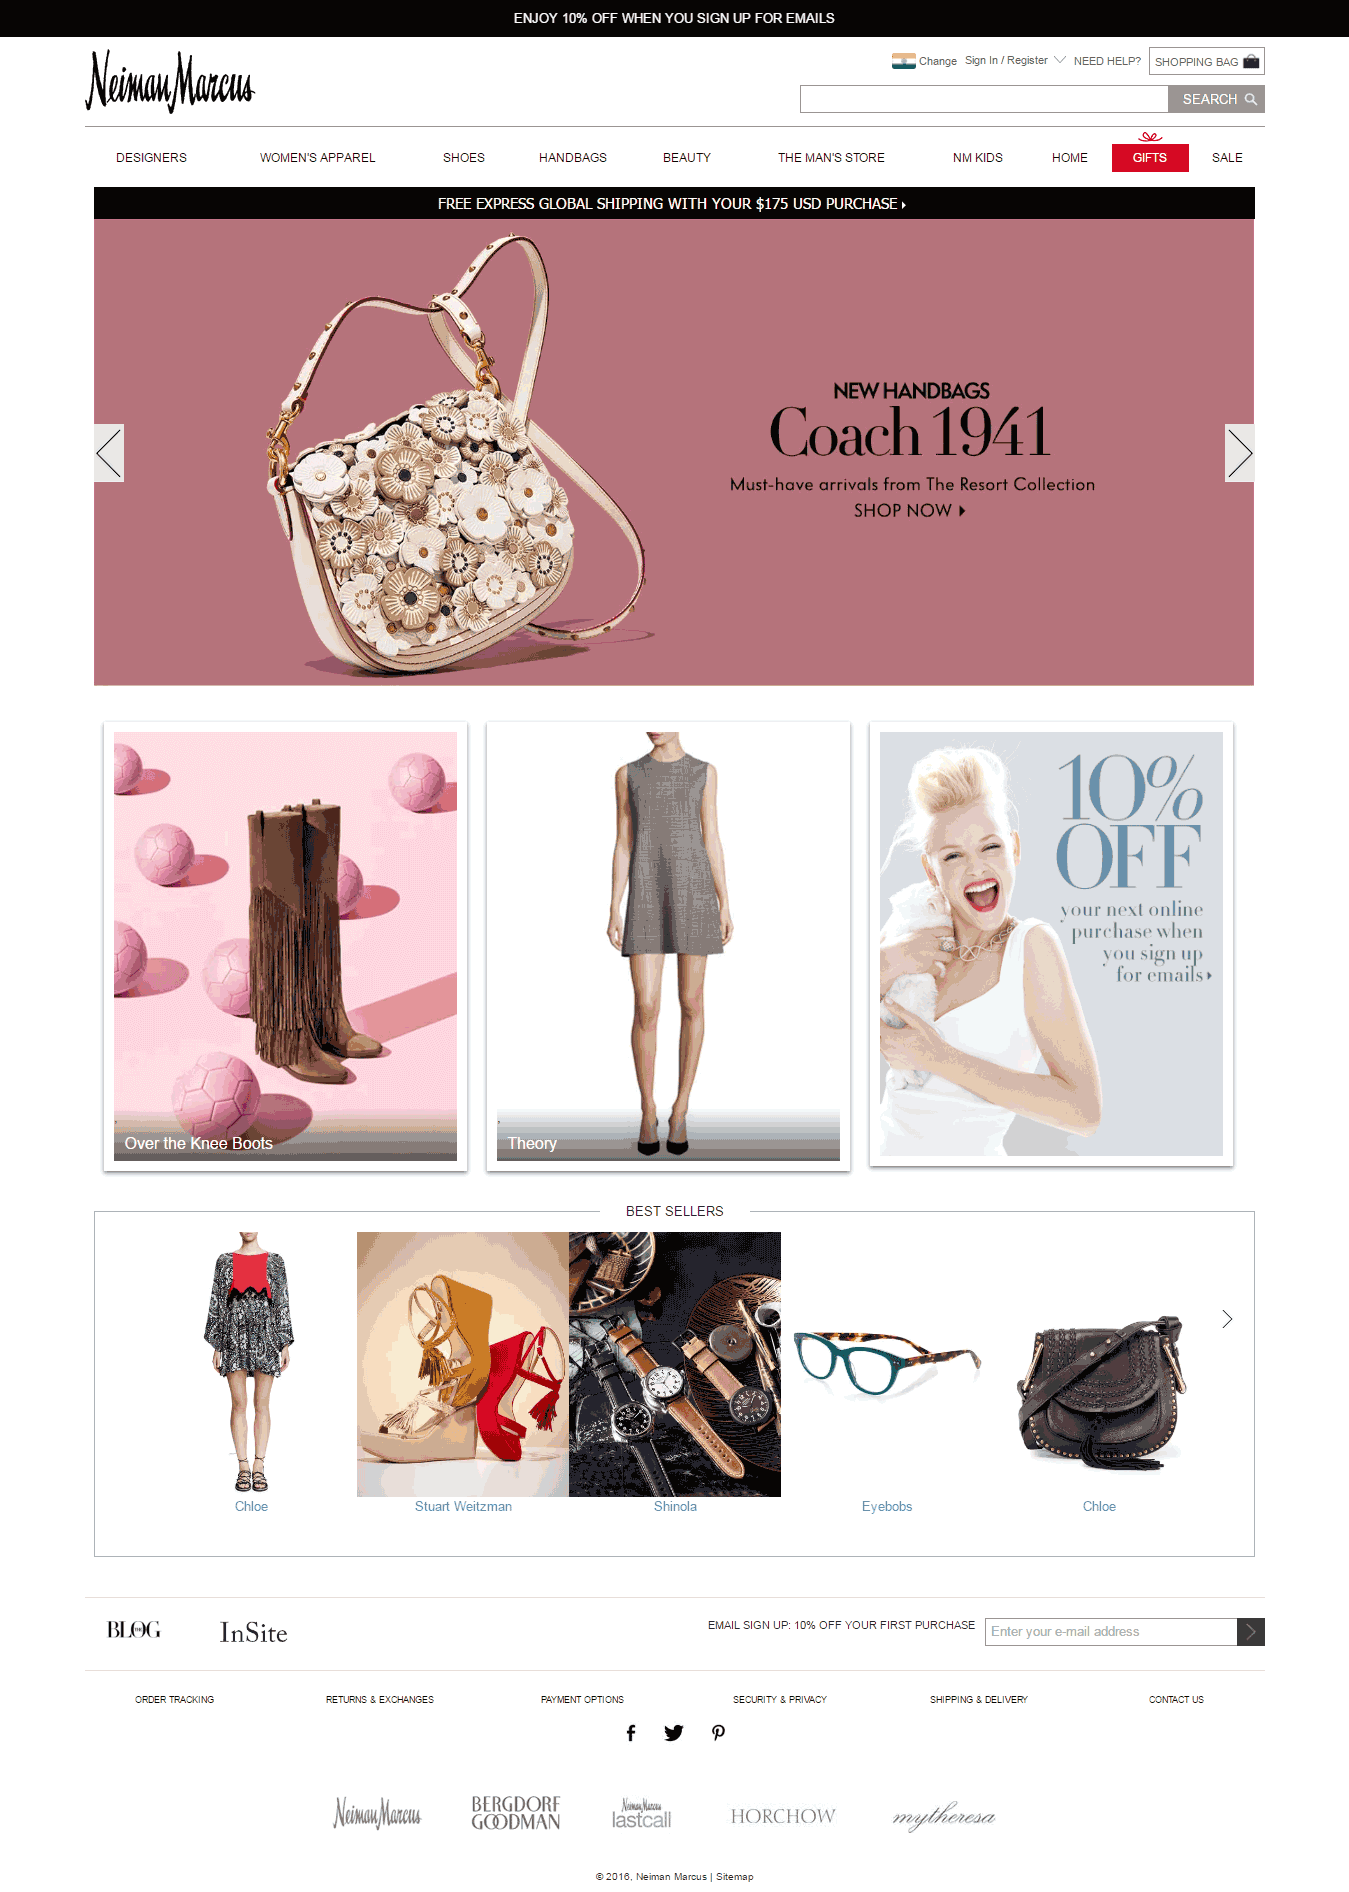 Email Landing Page_Neiman Marcus Website